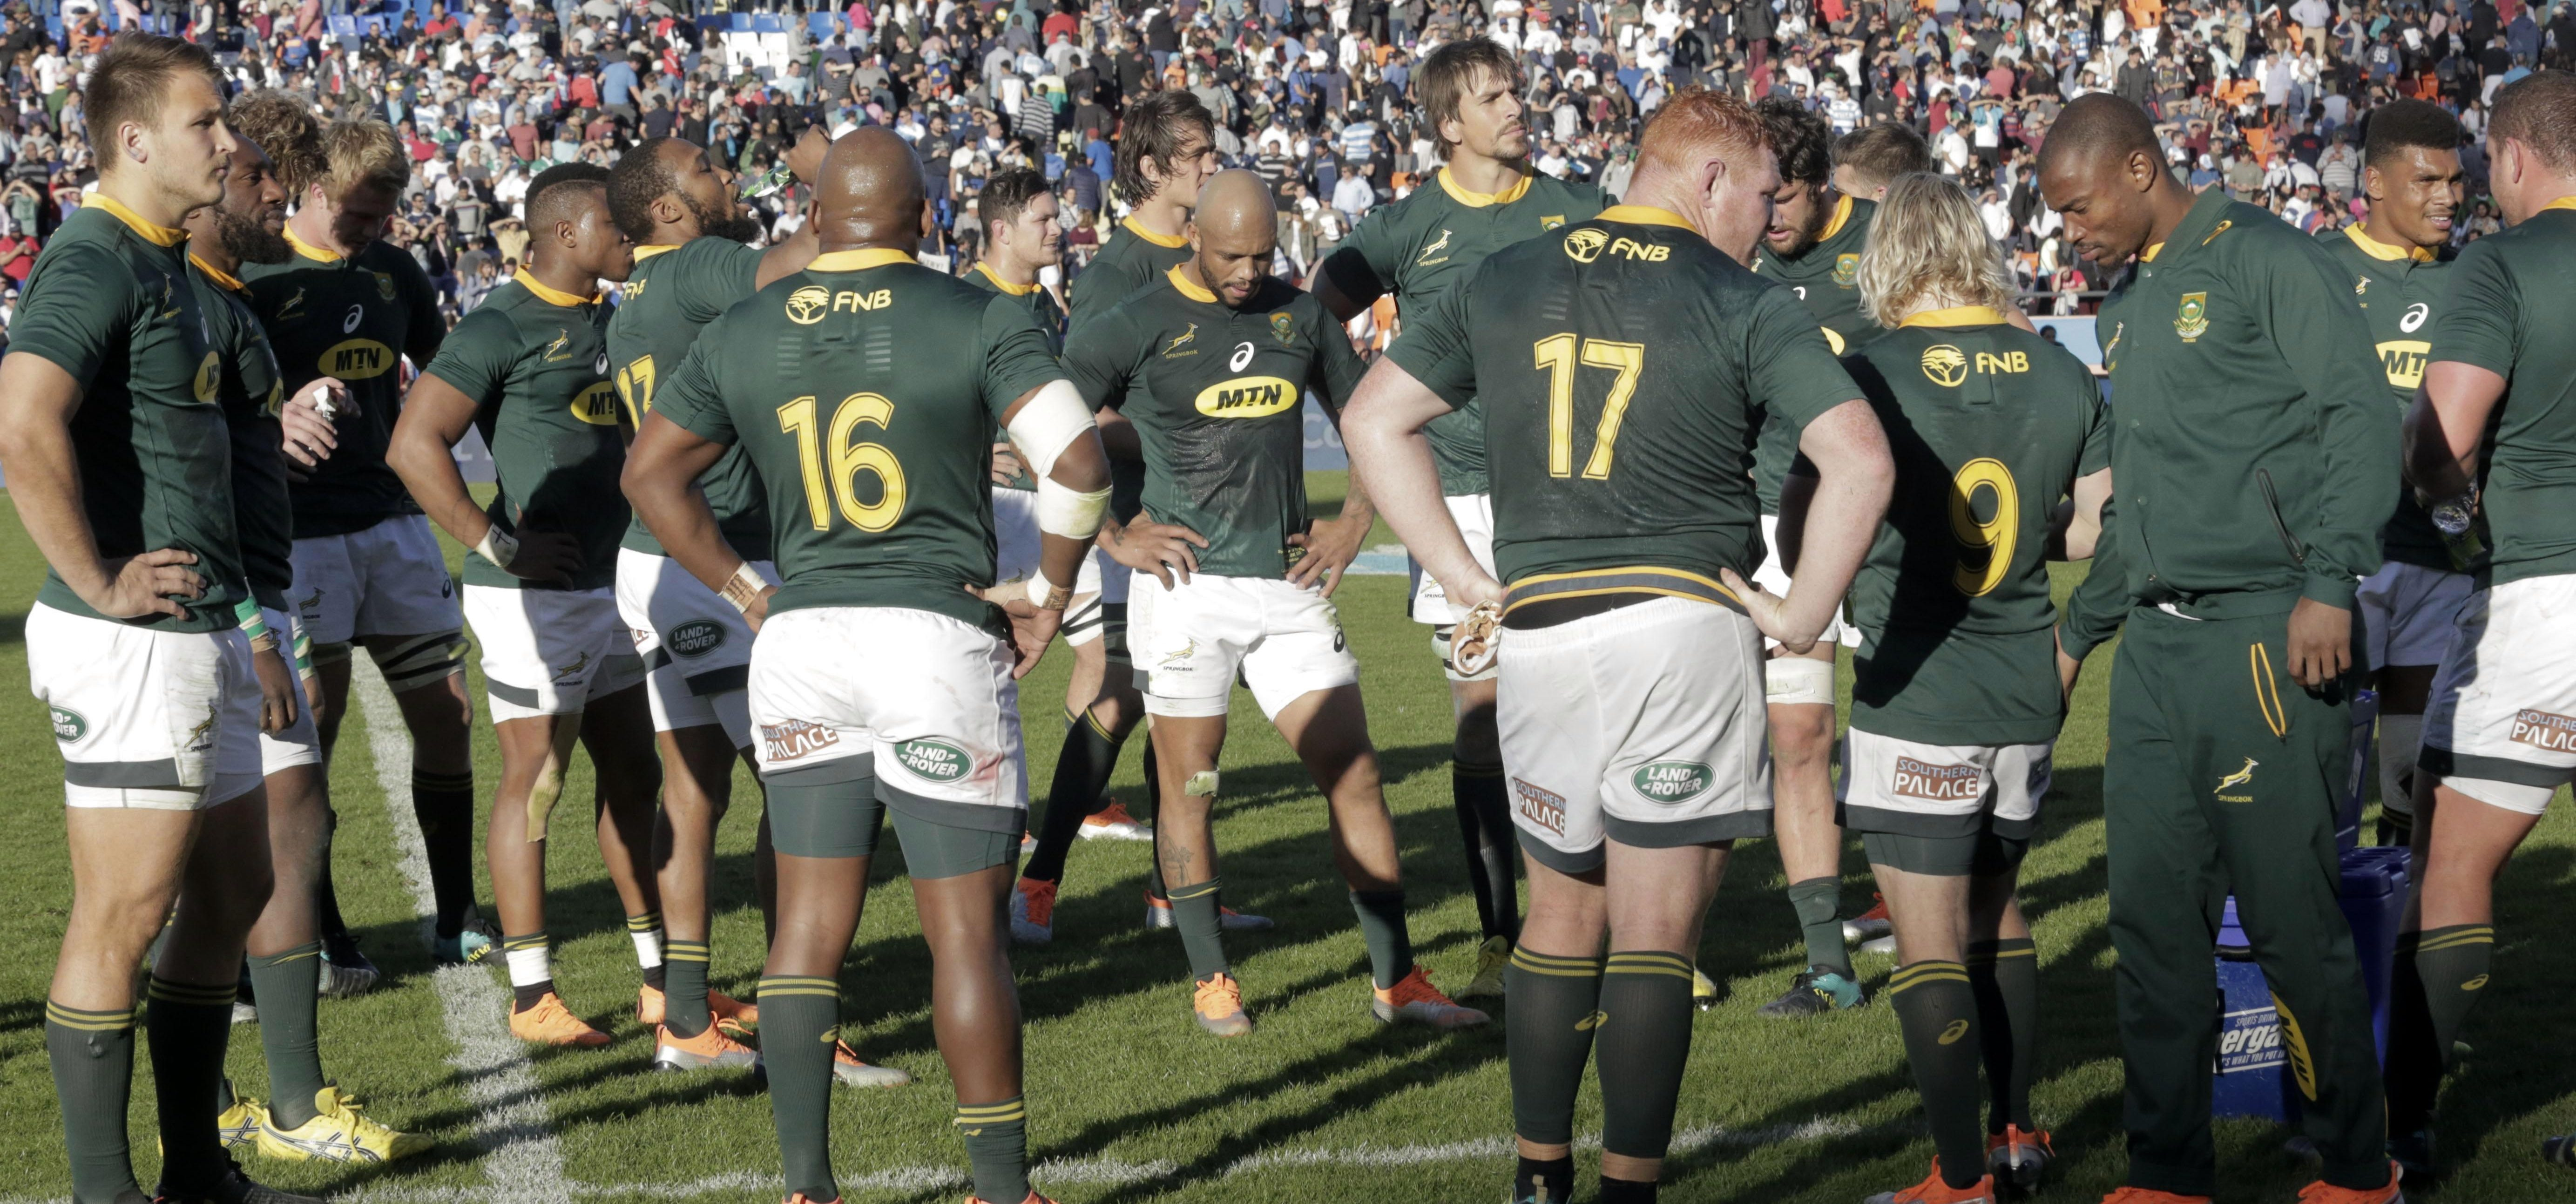 The Springboks cut dejected figures after their defeat in Mendoza